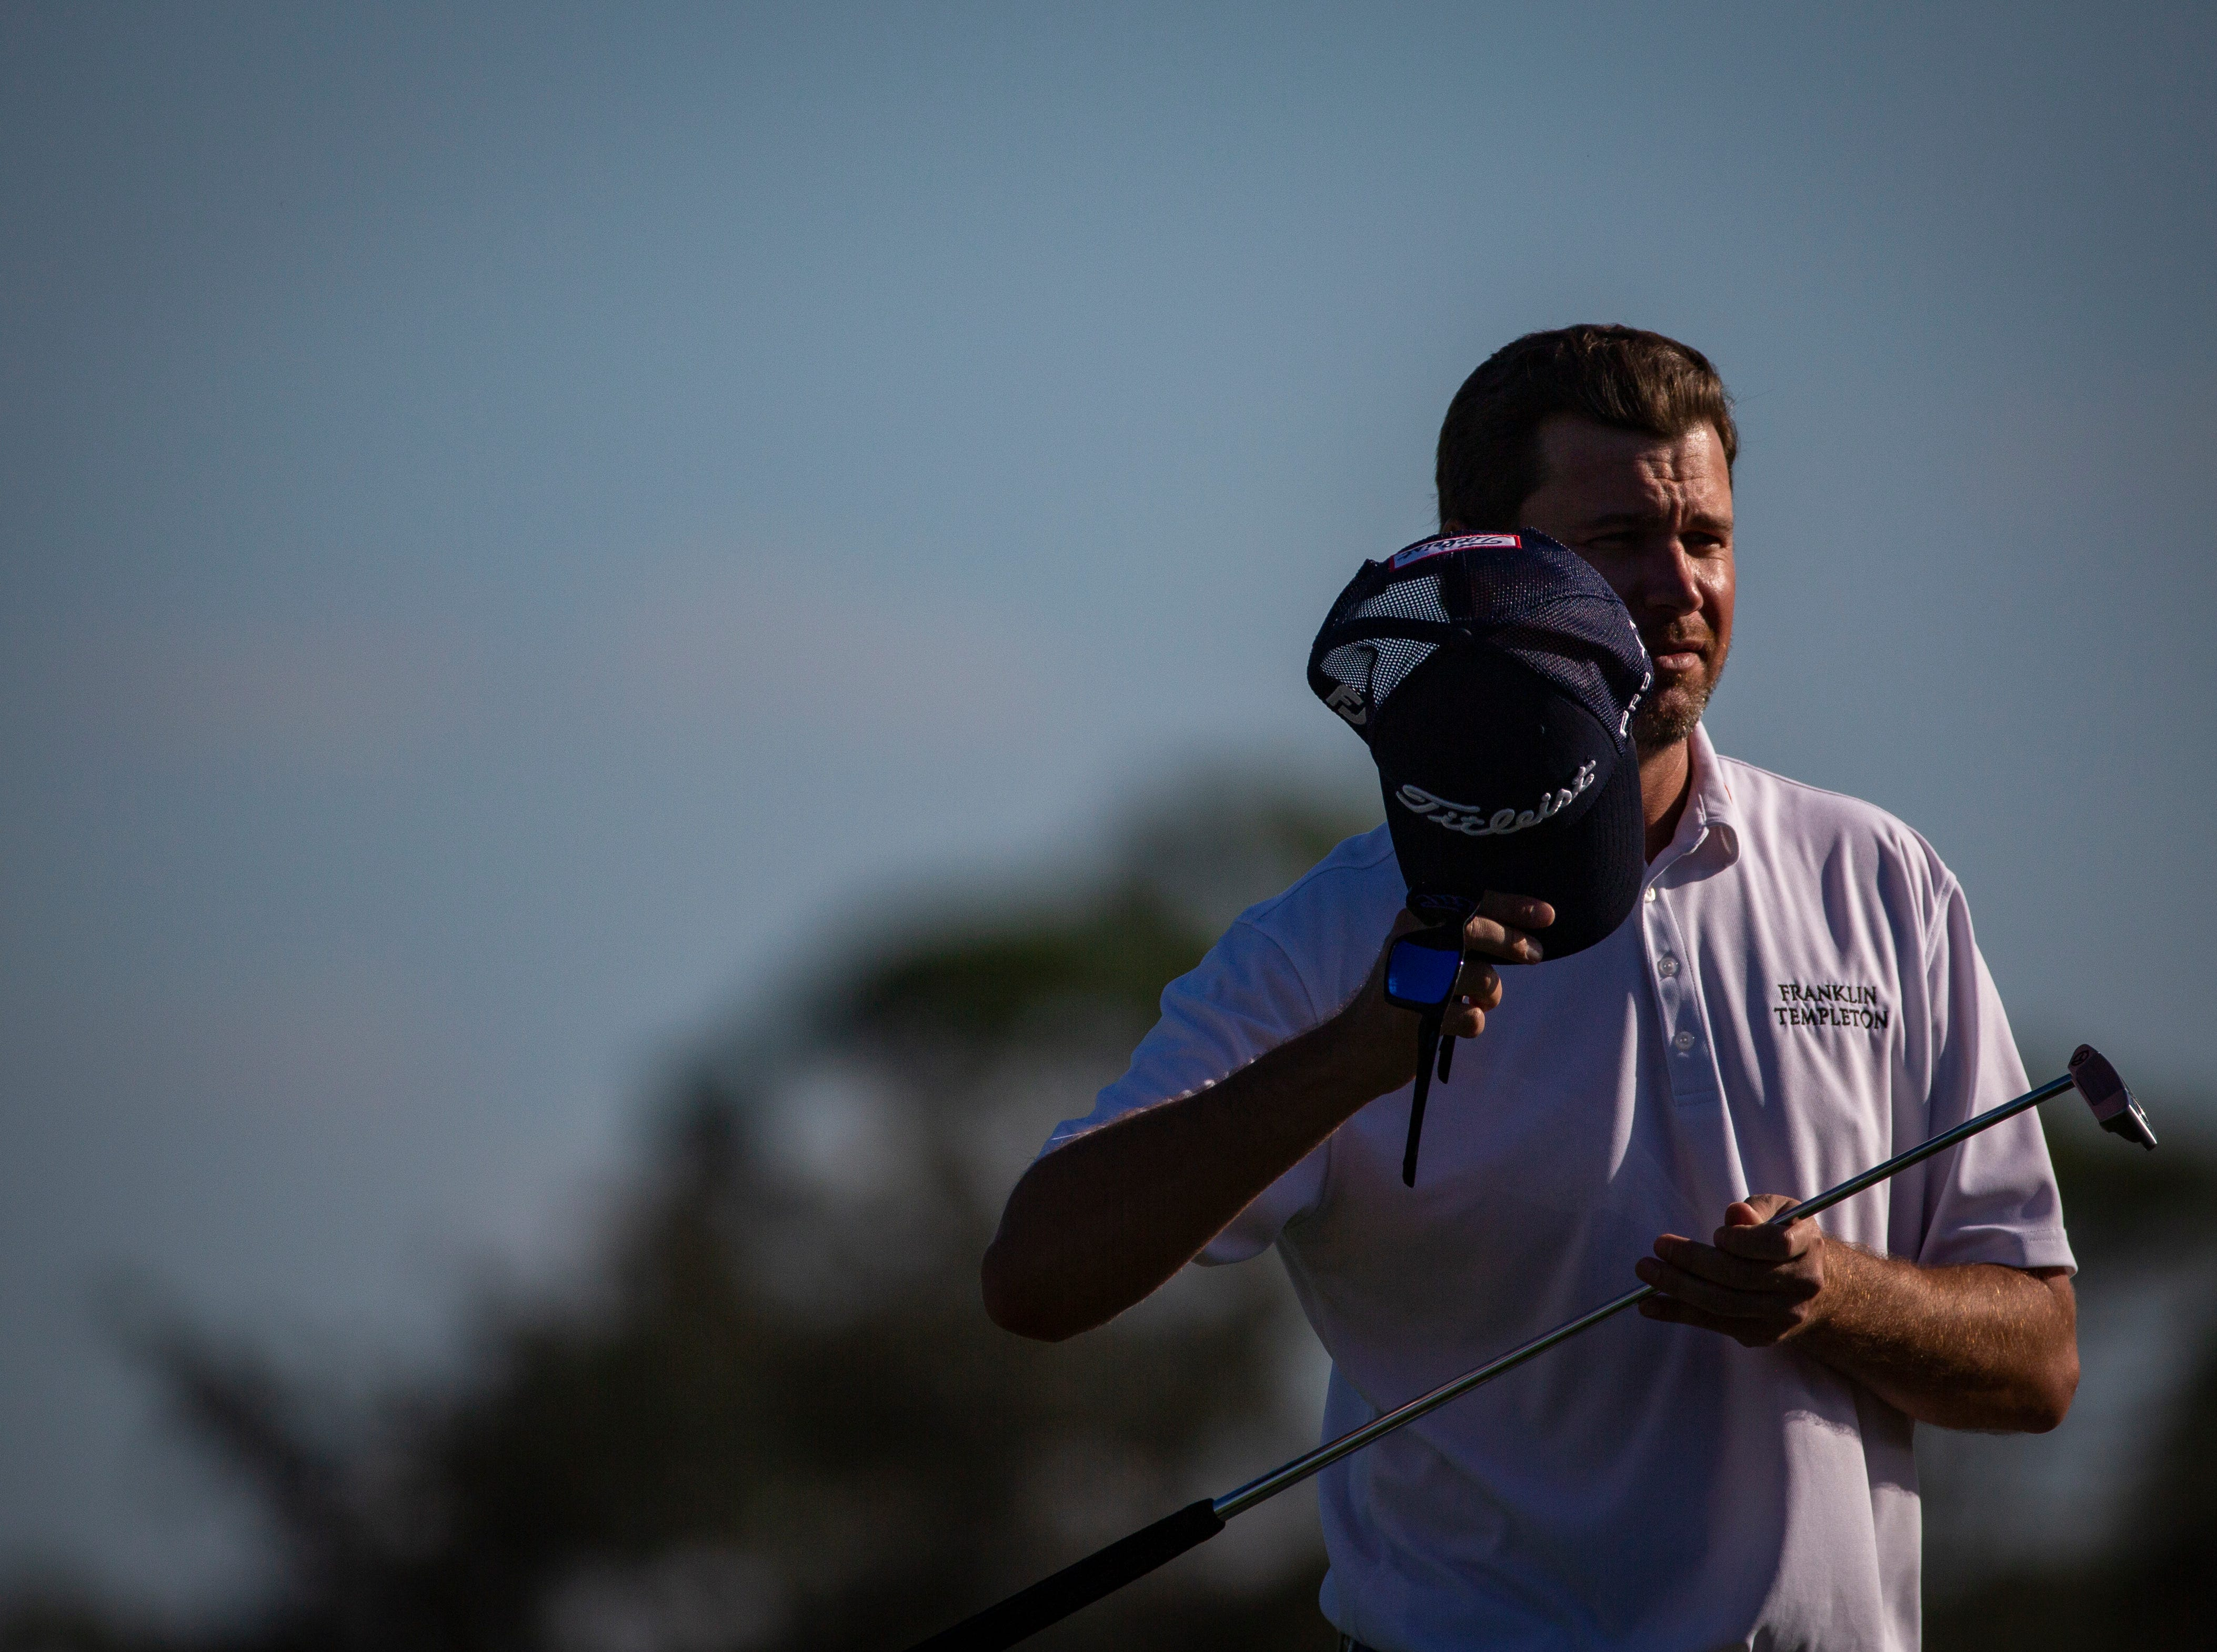 Steven O'Hair of Texas removes his cap after finishing the 30th annual QBE Shootout Pro - Amateur round two, on Thursday, Dec. 6, 2018, at Tiburón Golf Club in Naples.